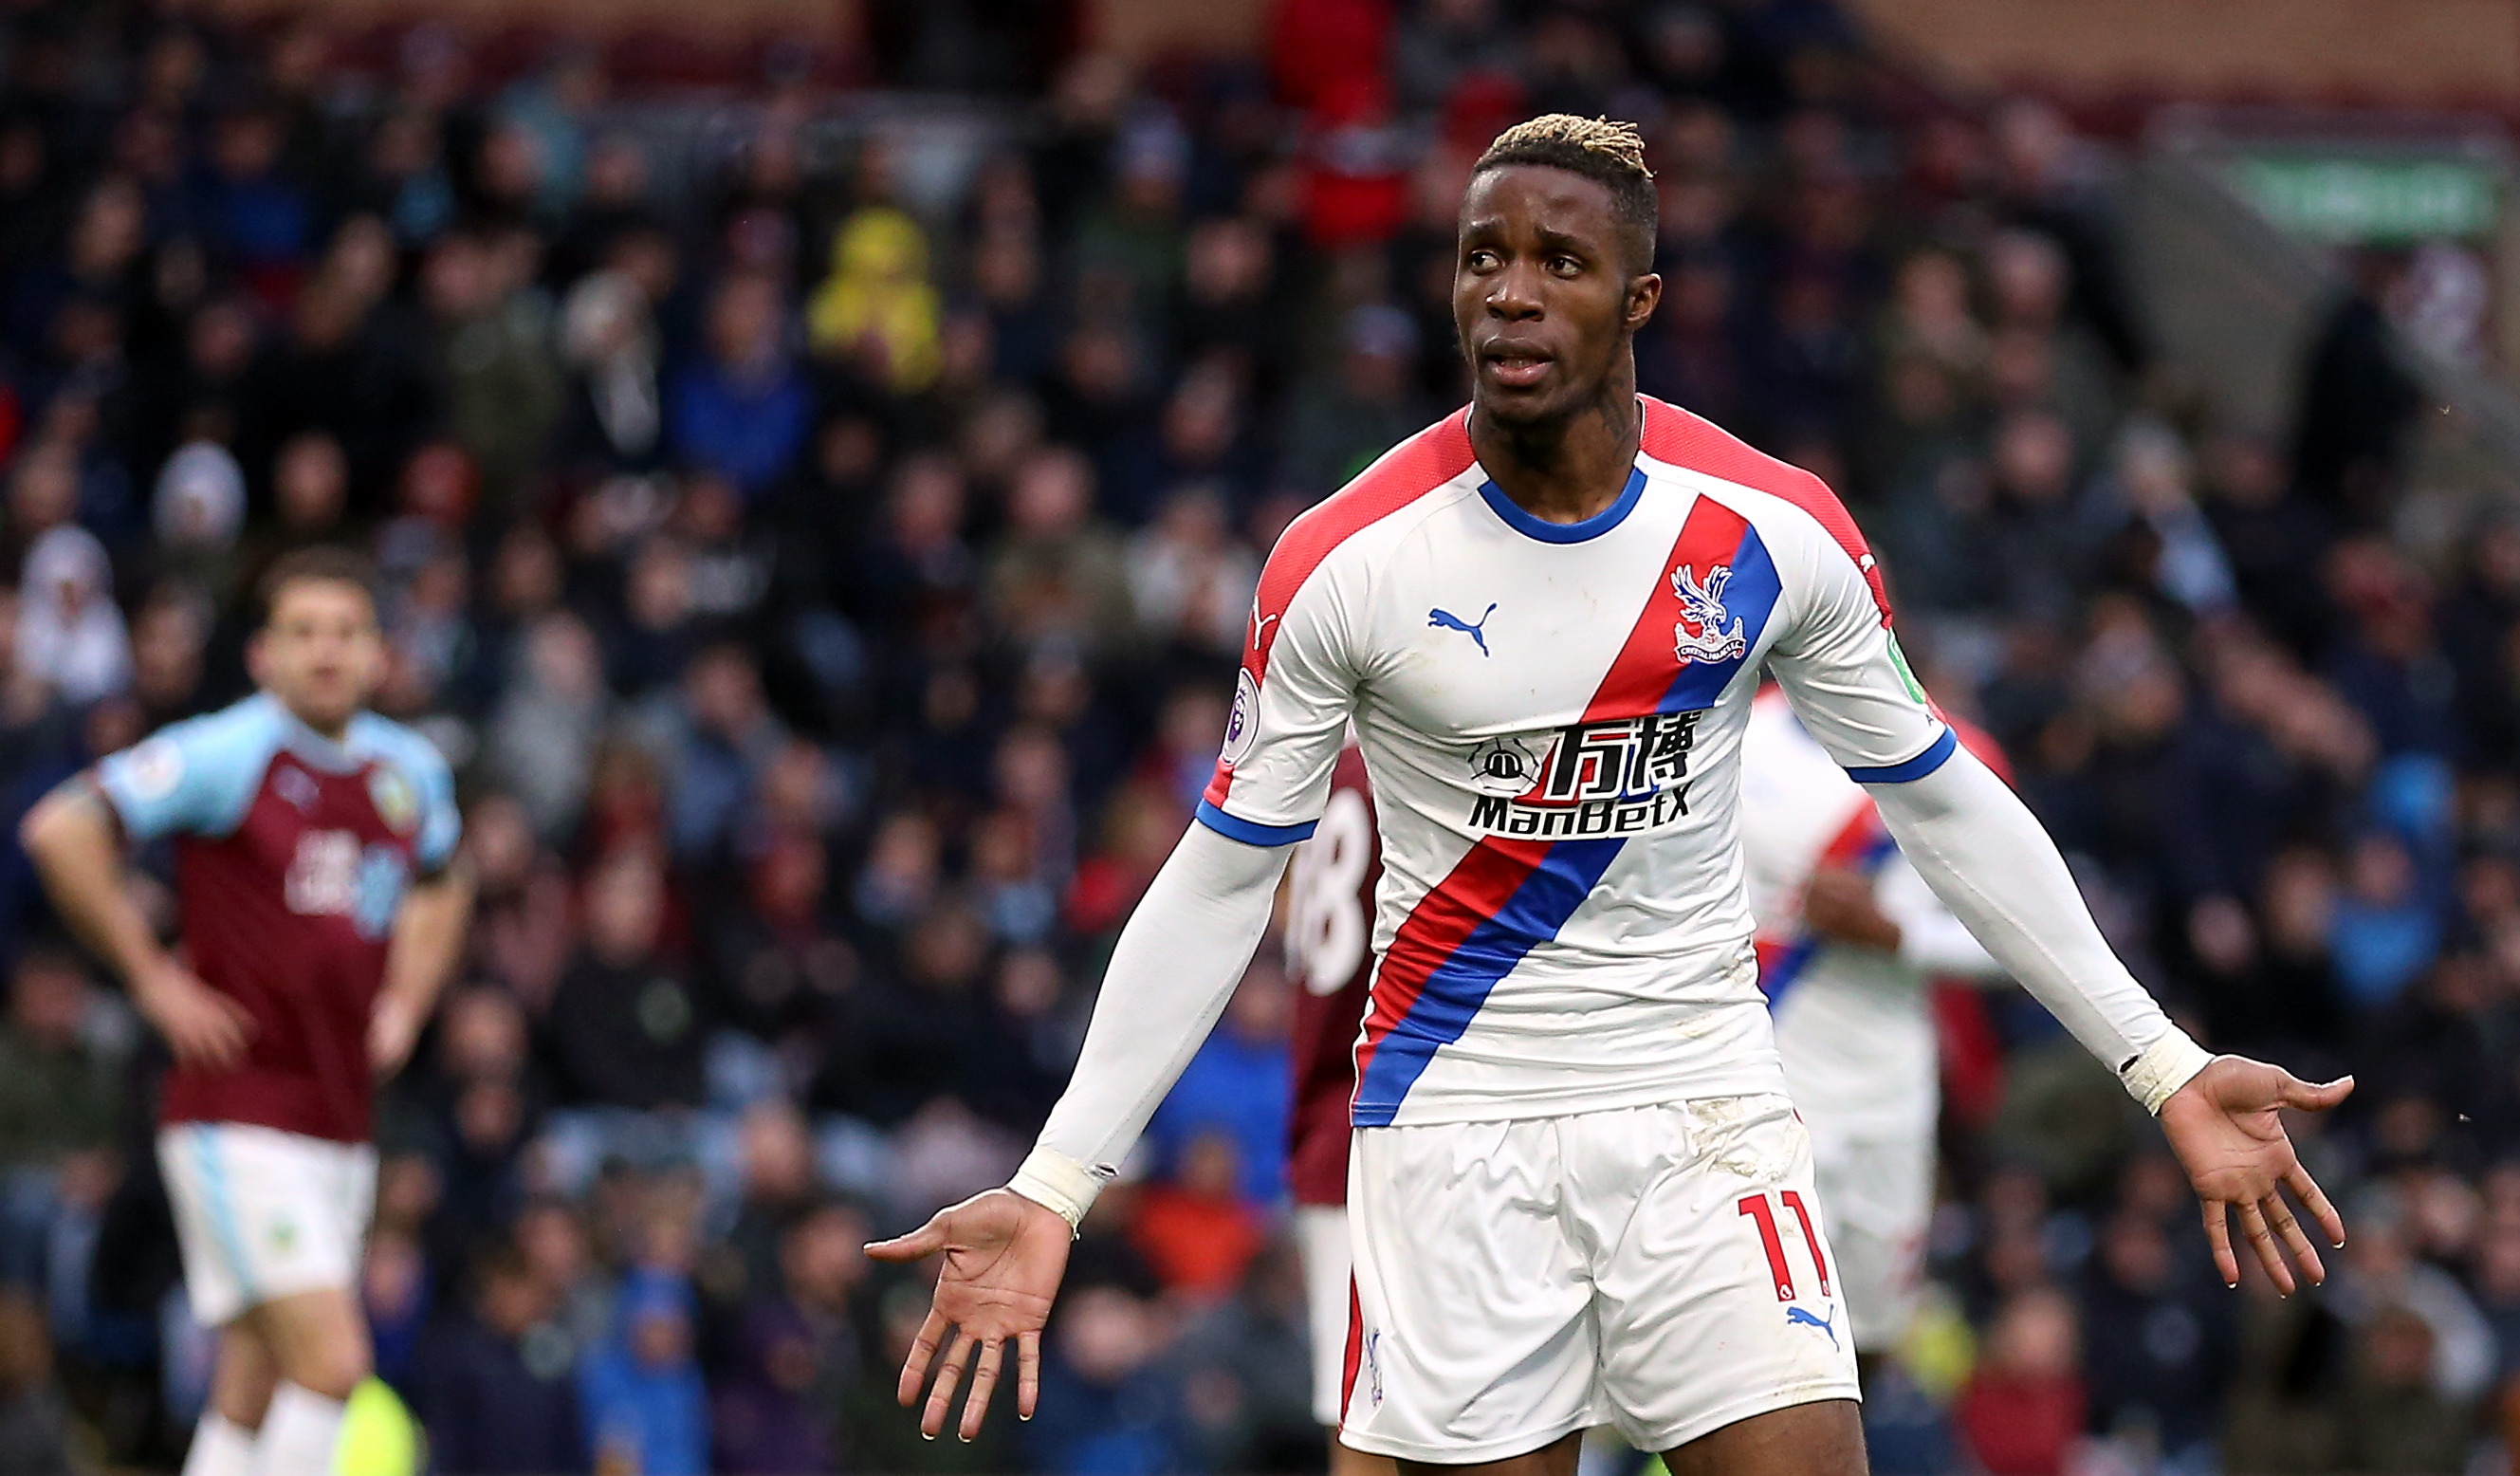 Palace have no intention of selling 'happy' Zaha, says Hodgson